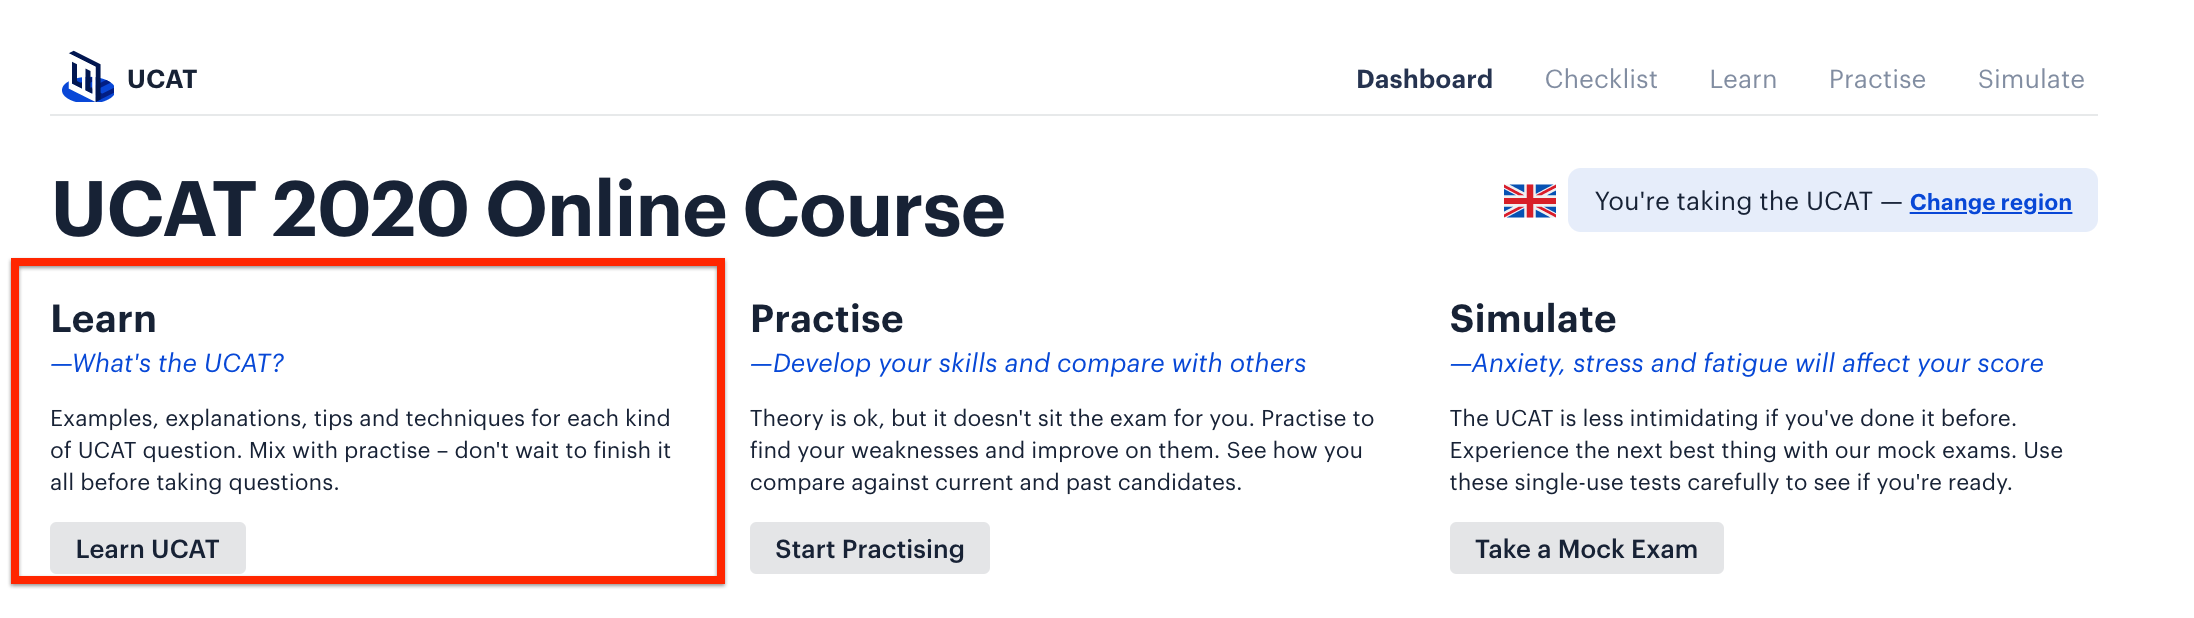 A screenshot of Medify's Online UCAT course, with a red box drawn around the 'Learn' section.